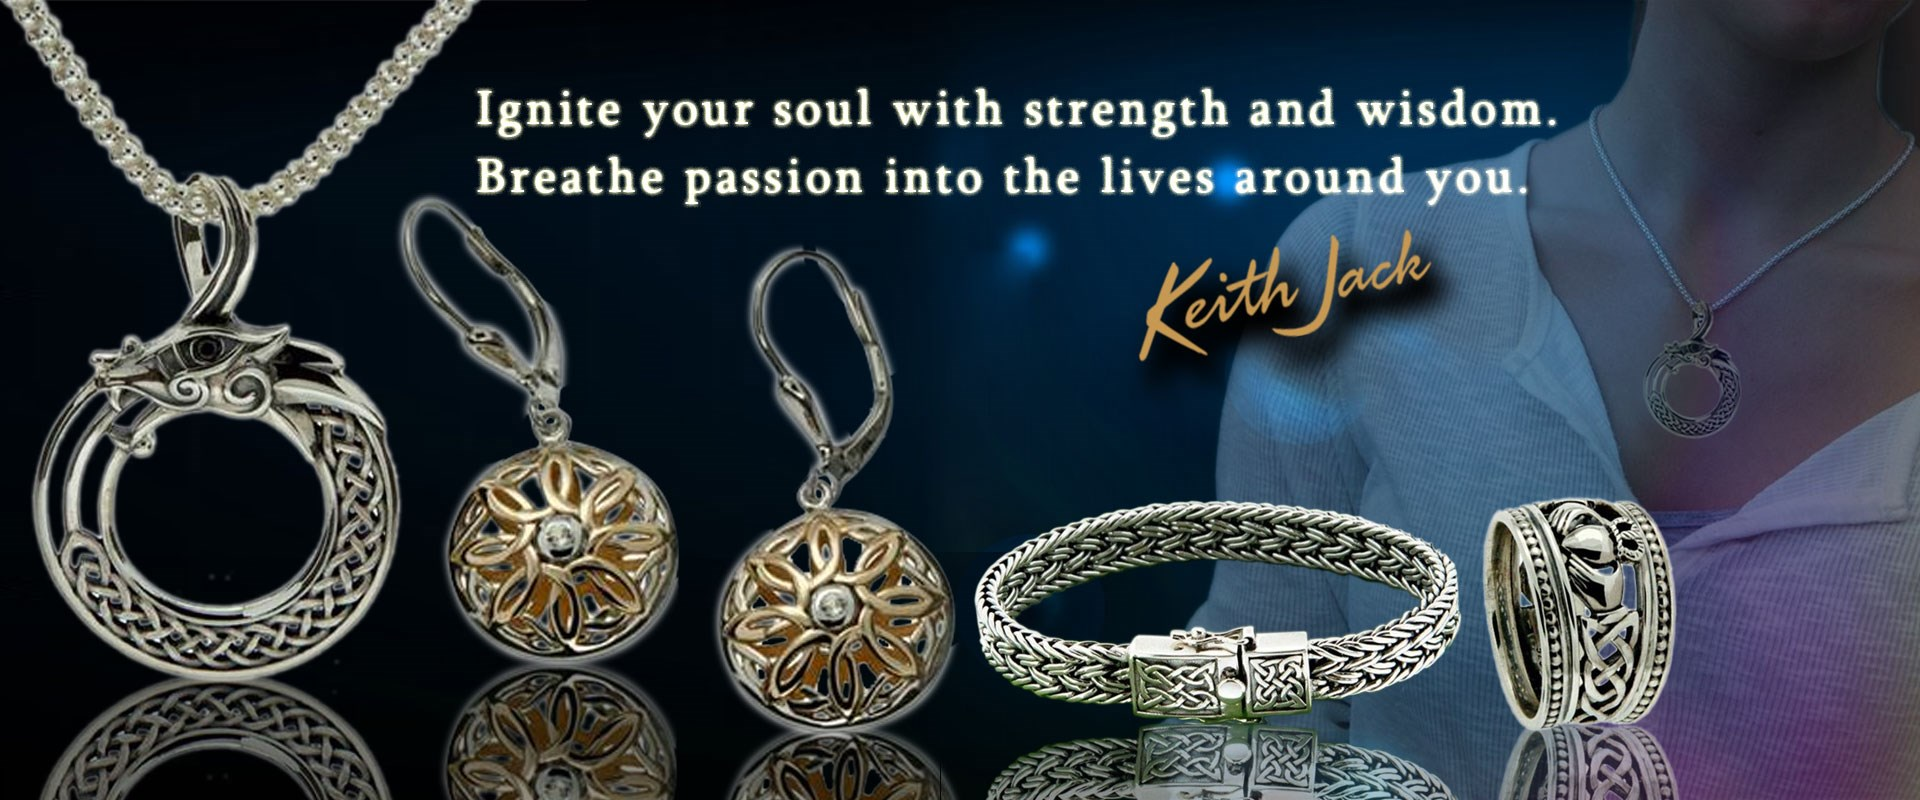 Keith Jack Jewelry at Tipperary